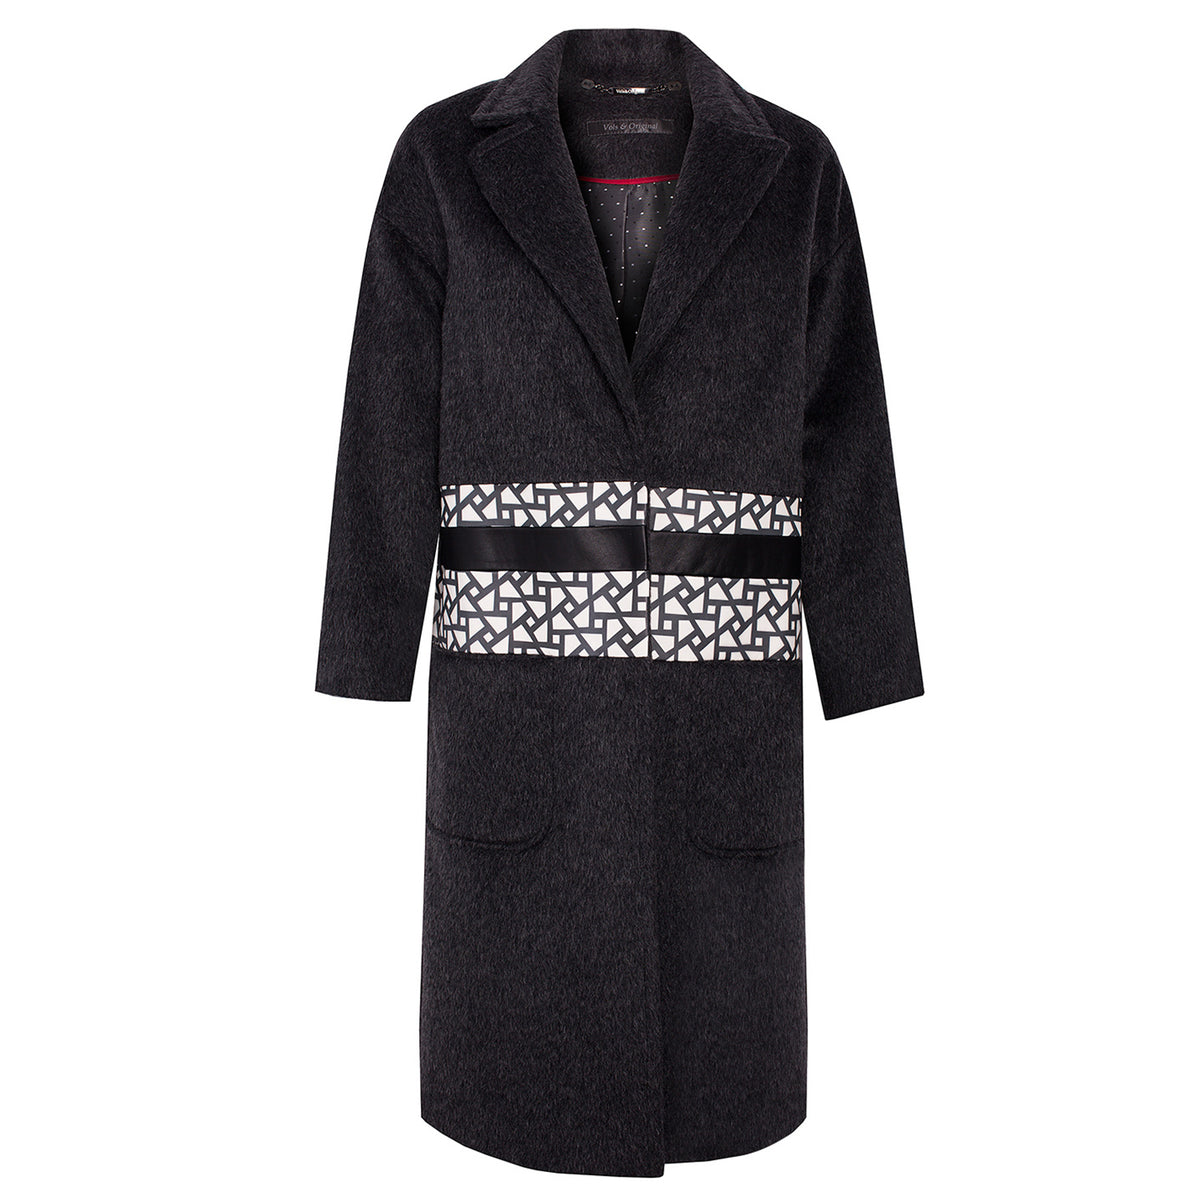 'Graffa' Cashmere Oversized Coat - VOLS & ORIGINAL